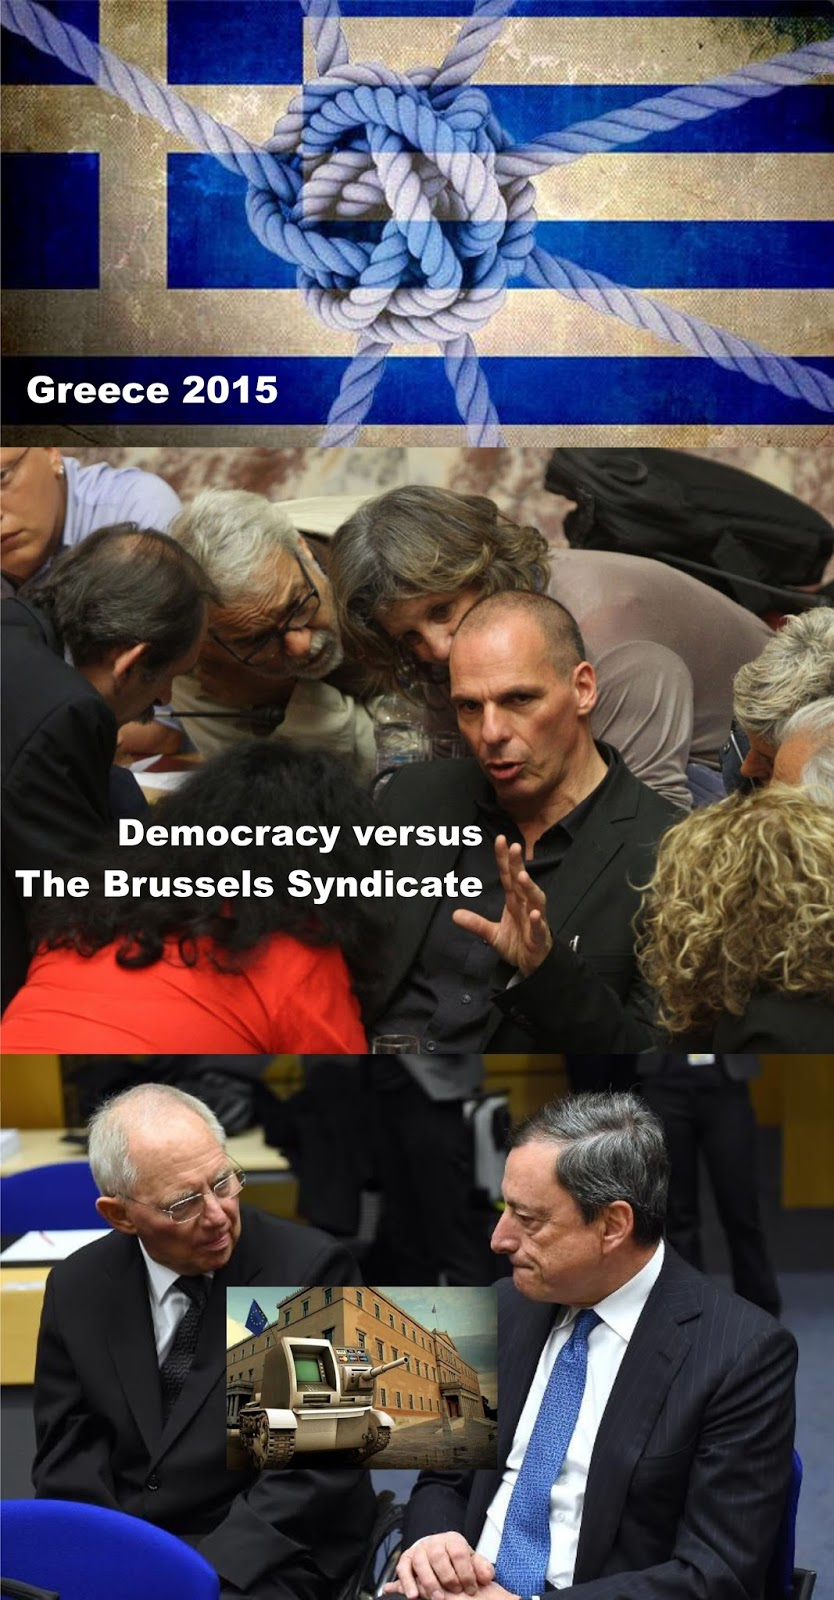 http://alcuinbramerton.blogspot.com/2015/08/greece-2015-democracy-versus-brussels.html